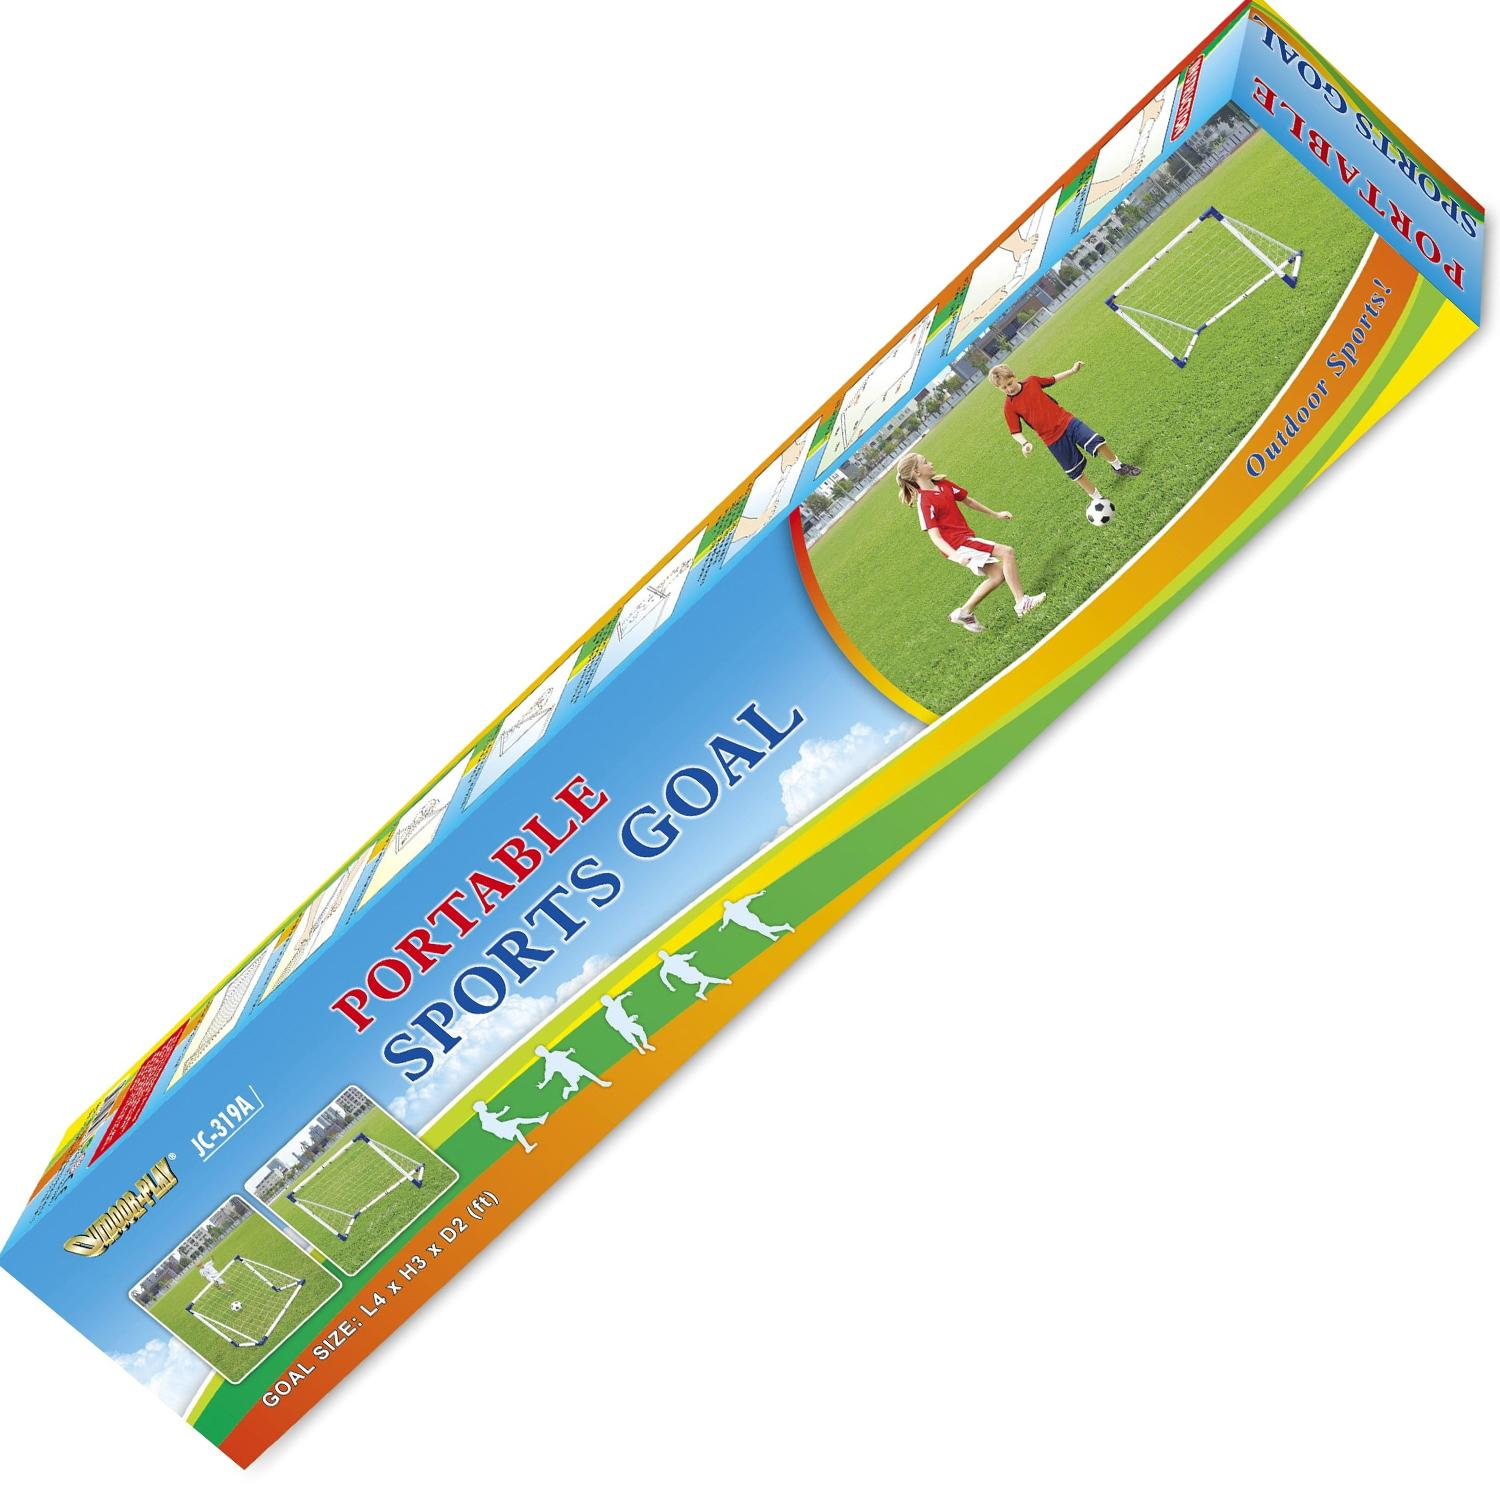 Ворота игровые DFC 4ft Portable Soccer GOAL319A, фото №2